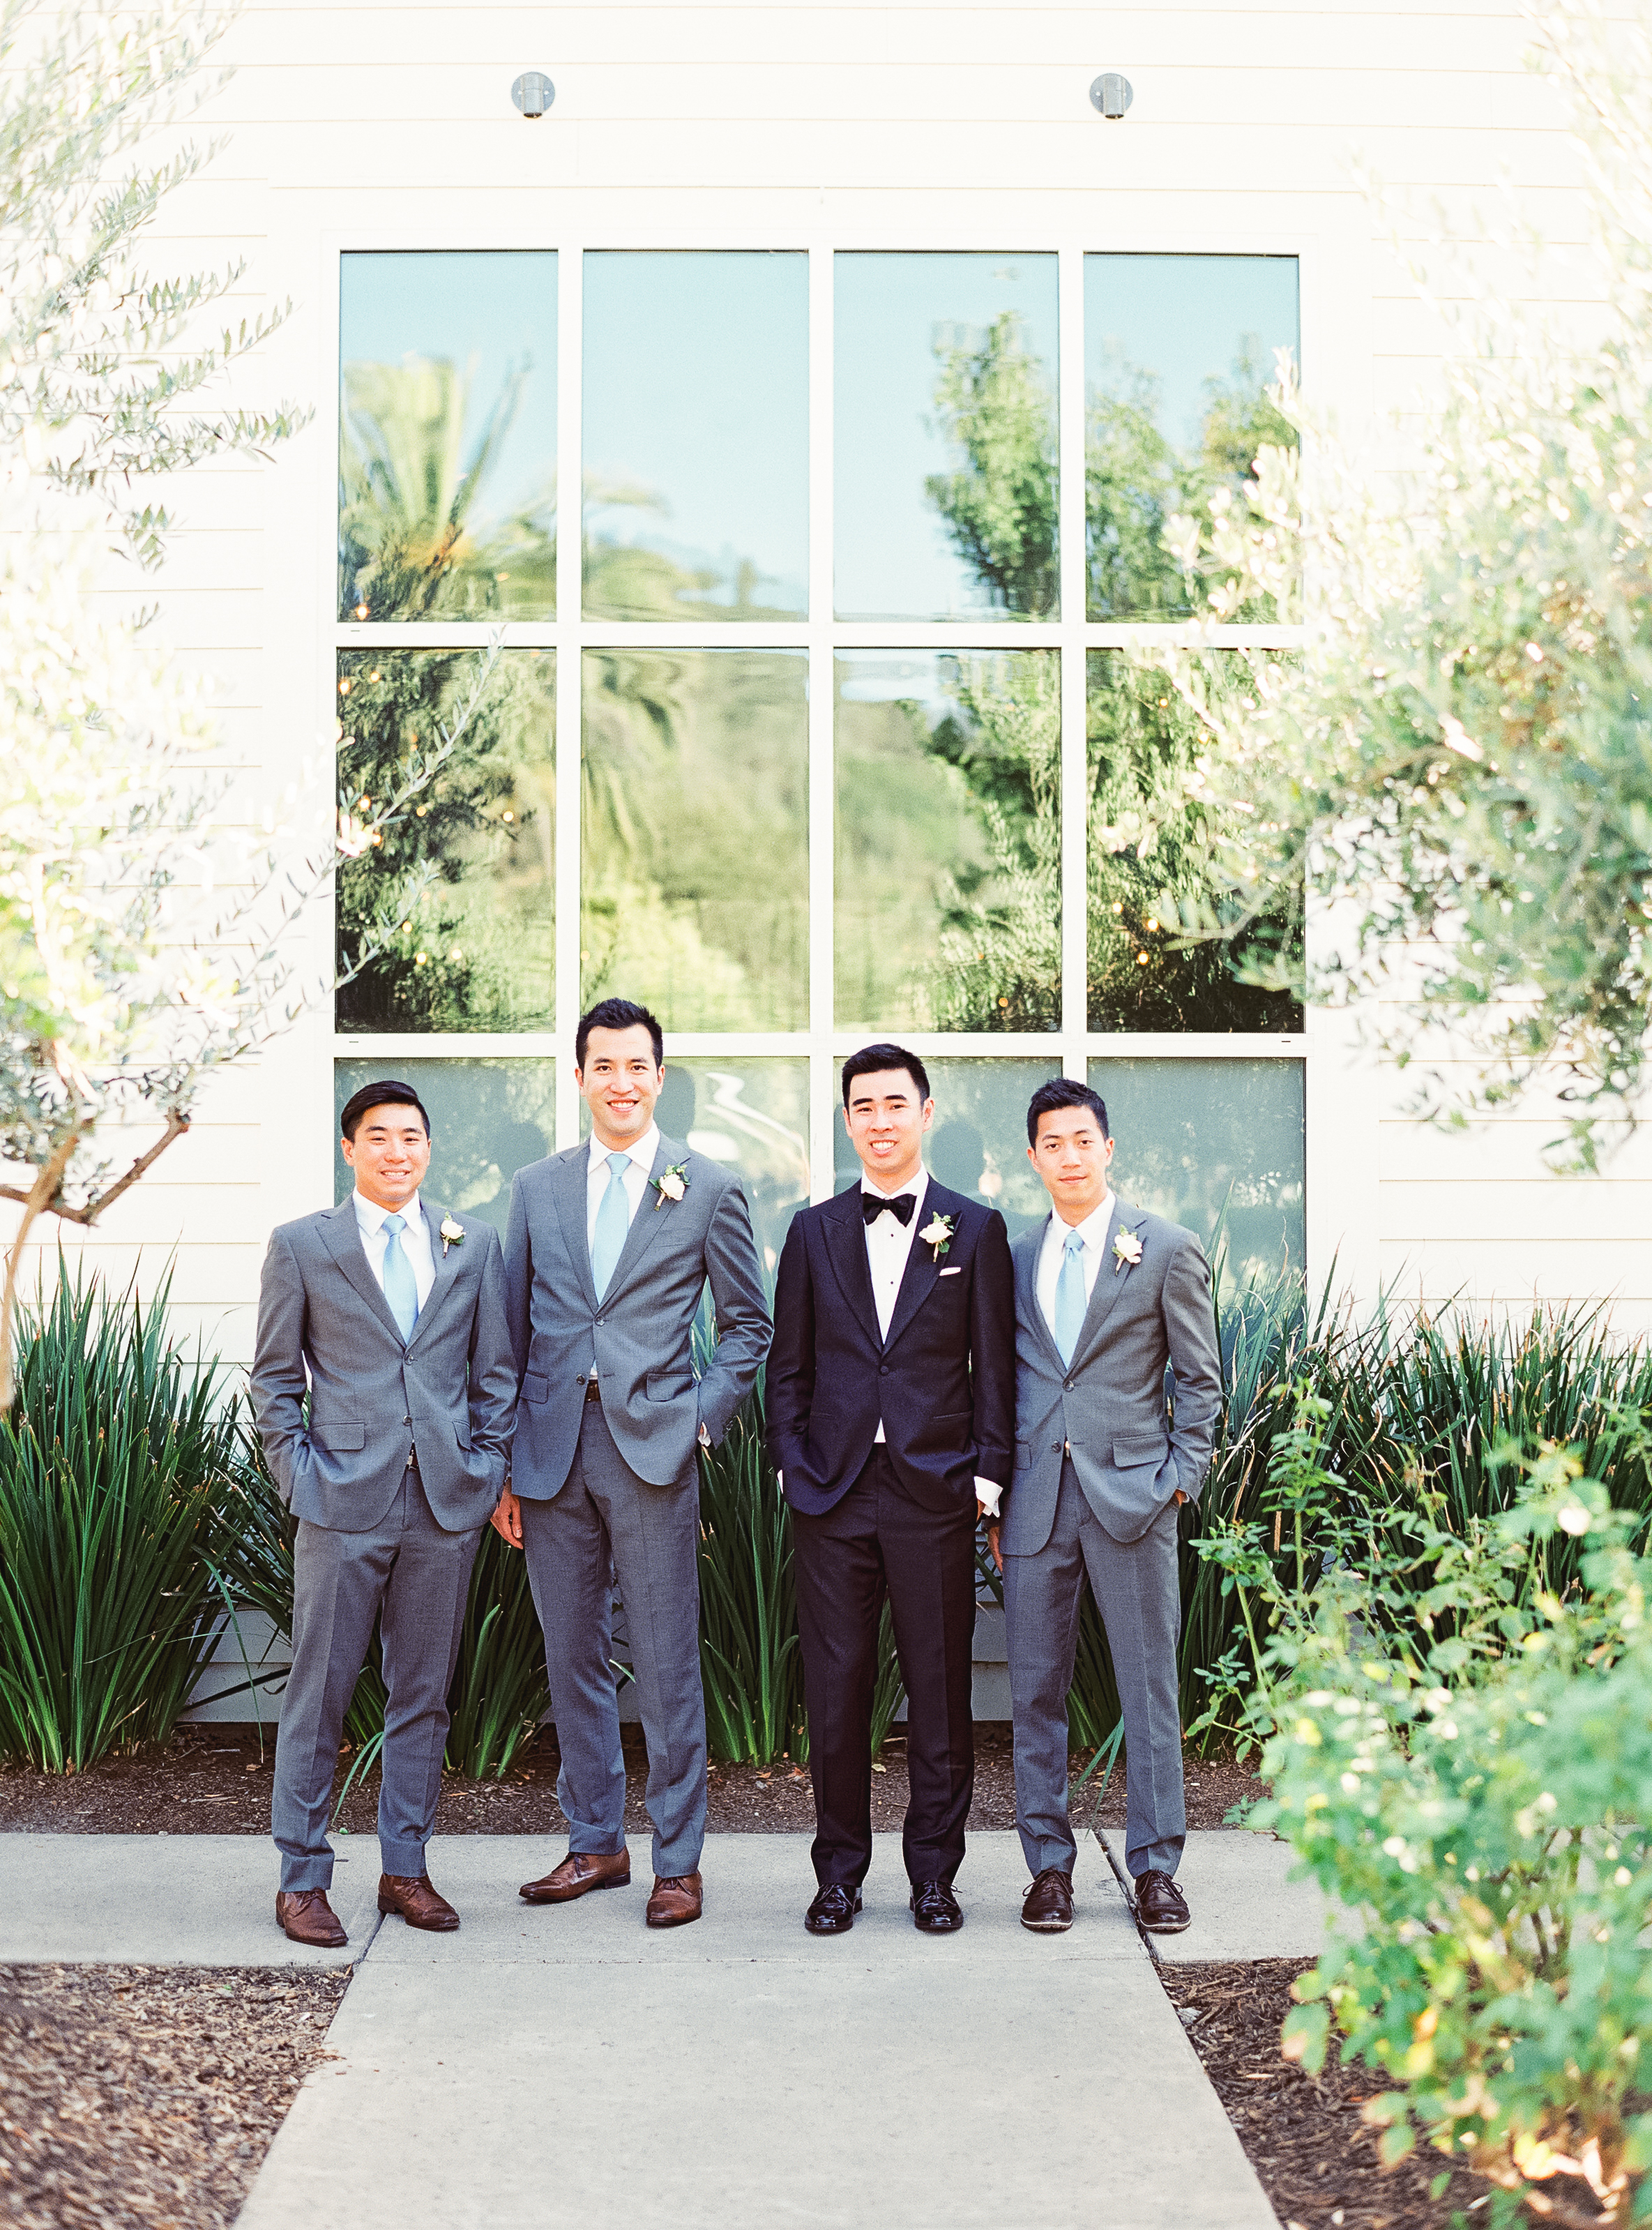 Napa Valley Wedding | Michele Beckwith | Chinese Wedding | Vineyard Wedding | Fine Art Wedding Blog | Joy Wed | Groom | Grey Suits